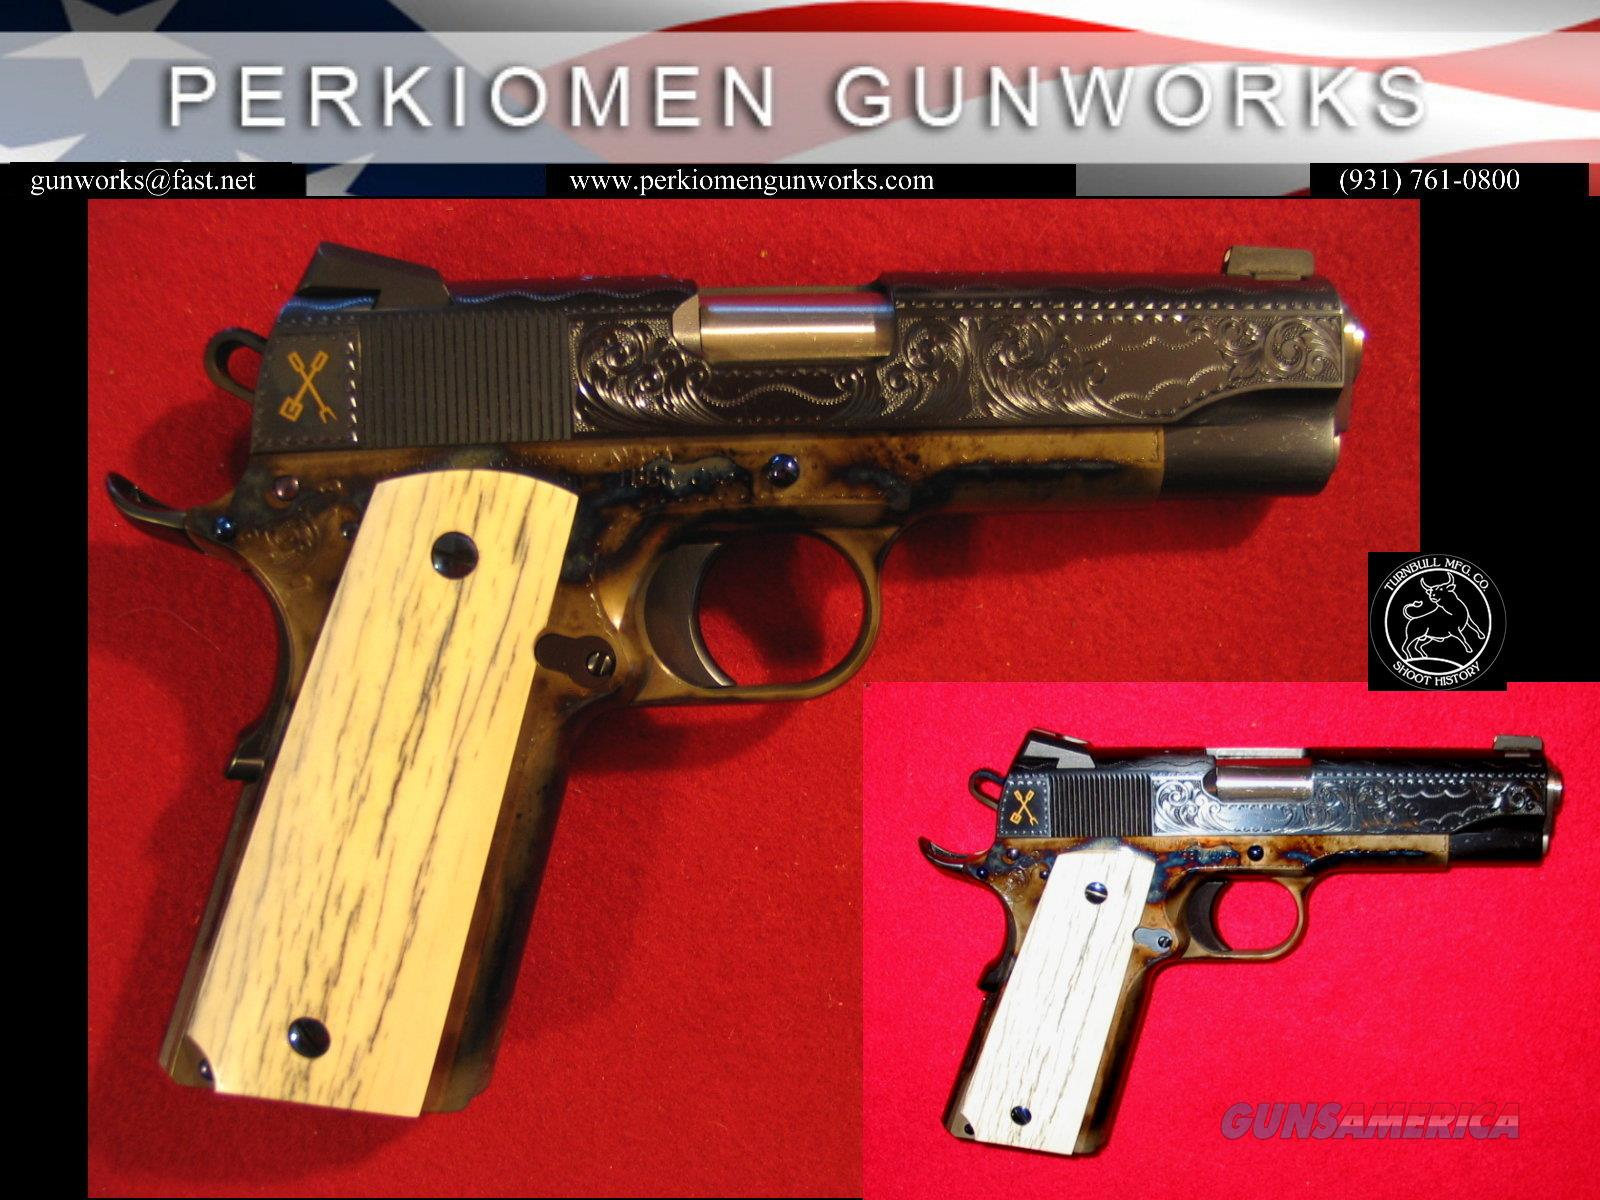 TURNBULL BBQ COMMANDER HERITAGE MODEL 1911, 45acp, New  Guns > Pistols > Custom Pistols > 1911 Family